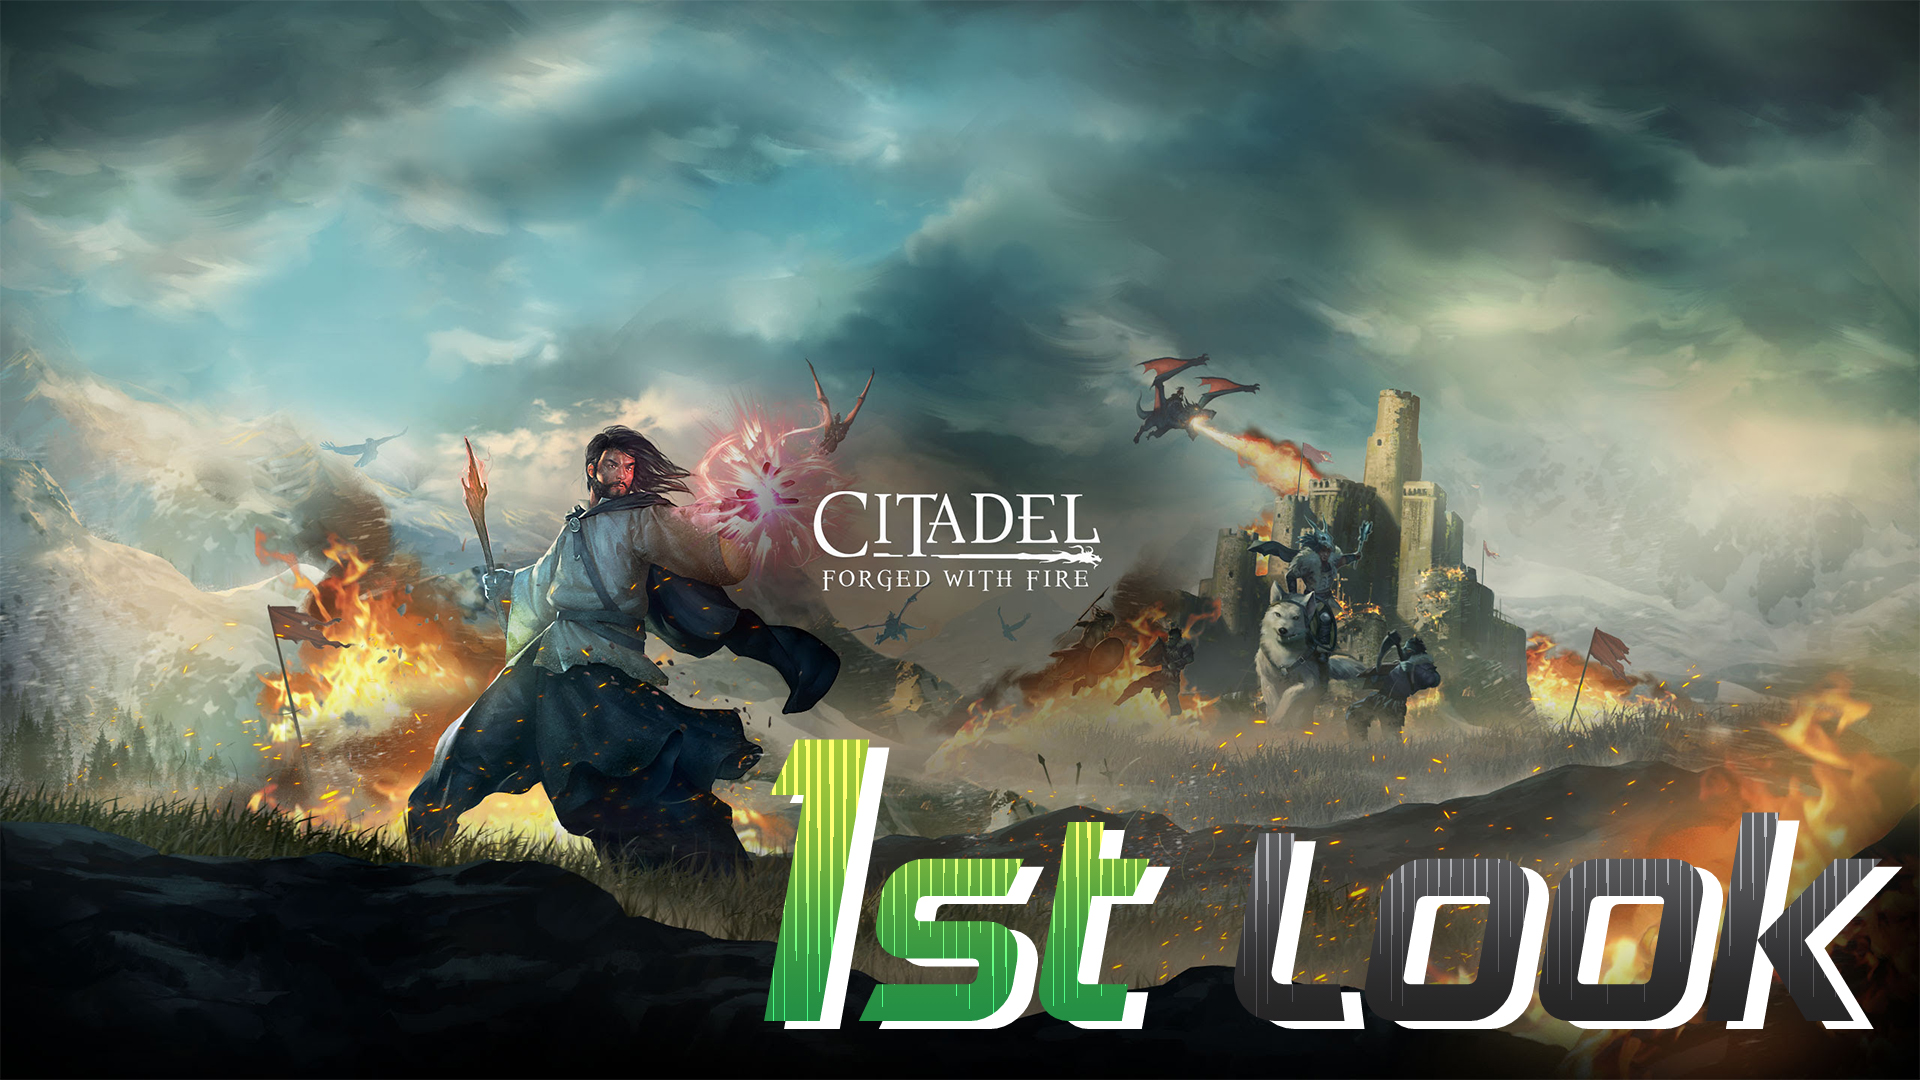 Colt takes a first look at Citadel: Forged with Fire, a new survival MMORPG from Blue Isle Games.